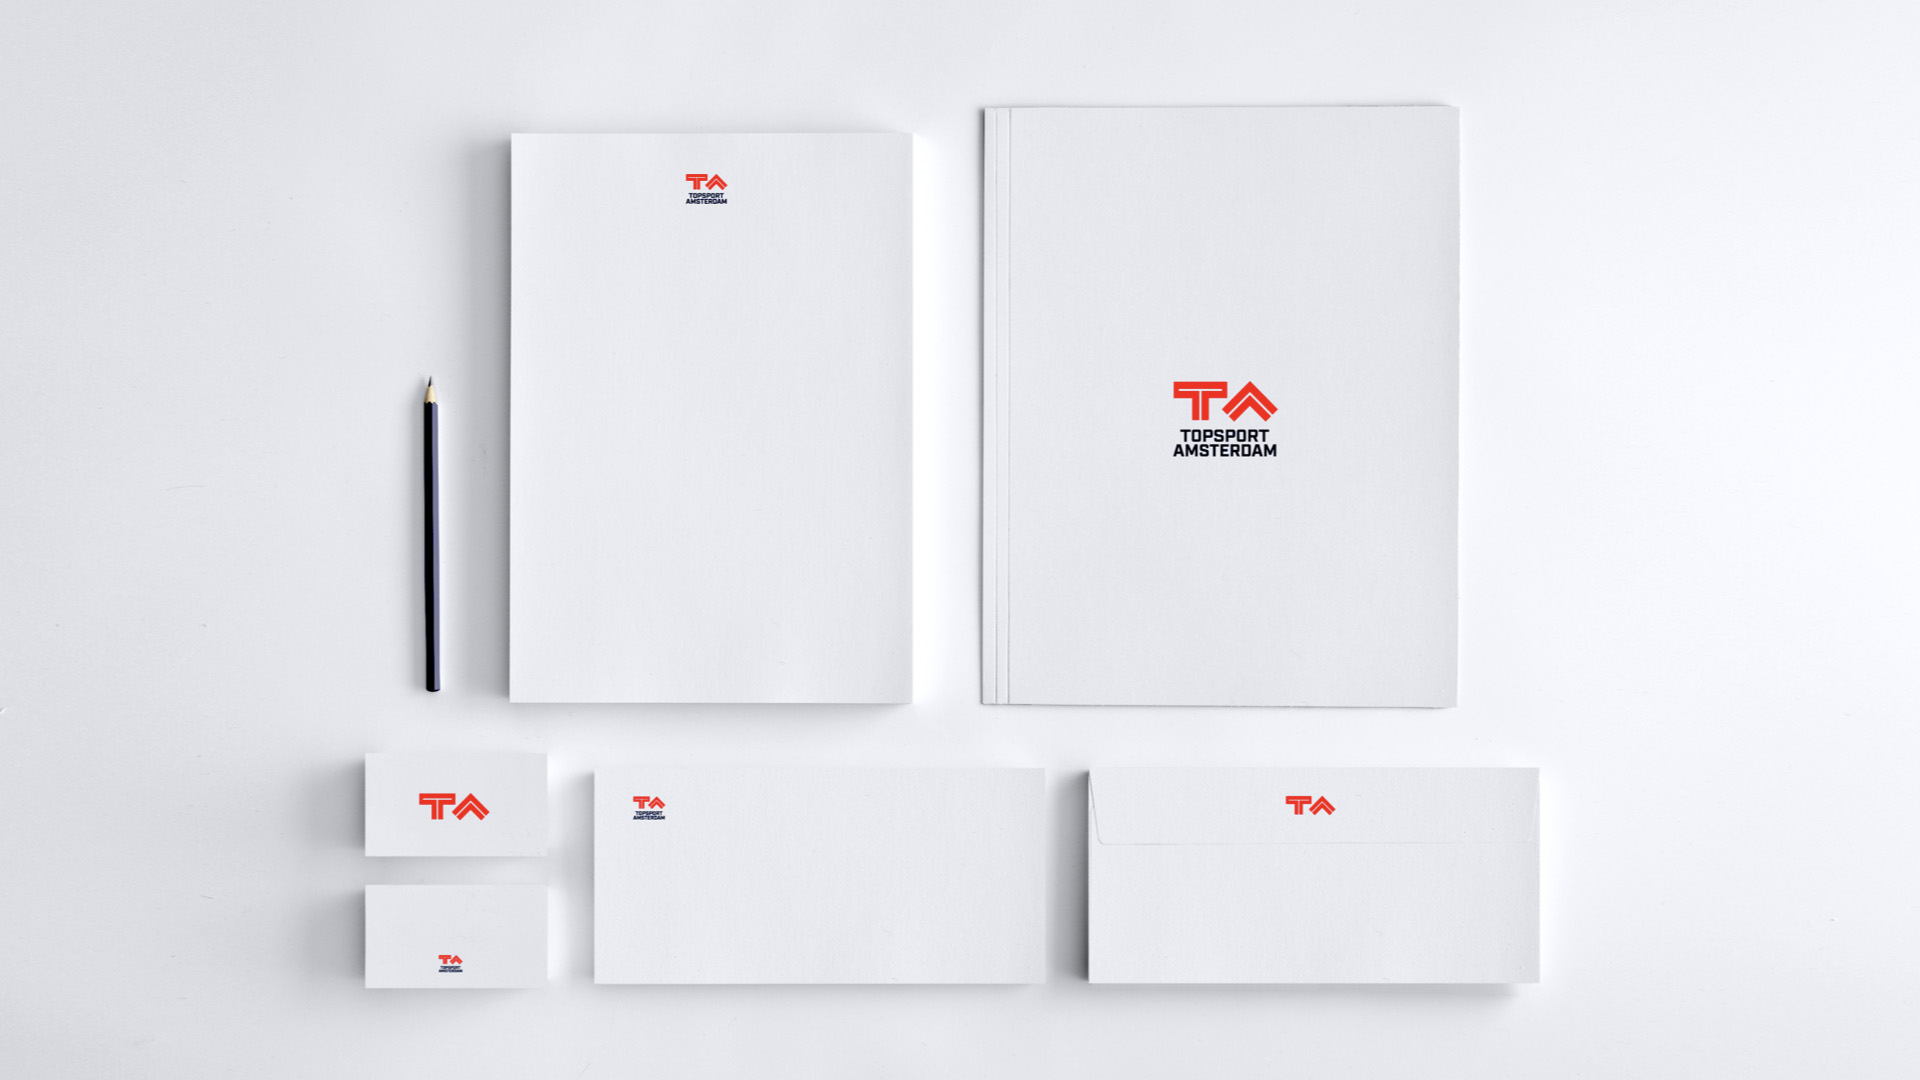 Topsport Amsterdam Collateral Design